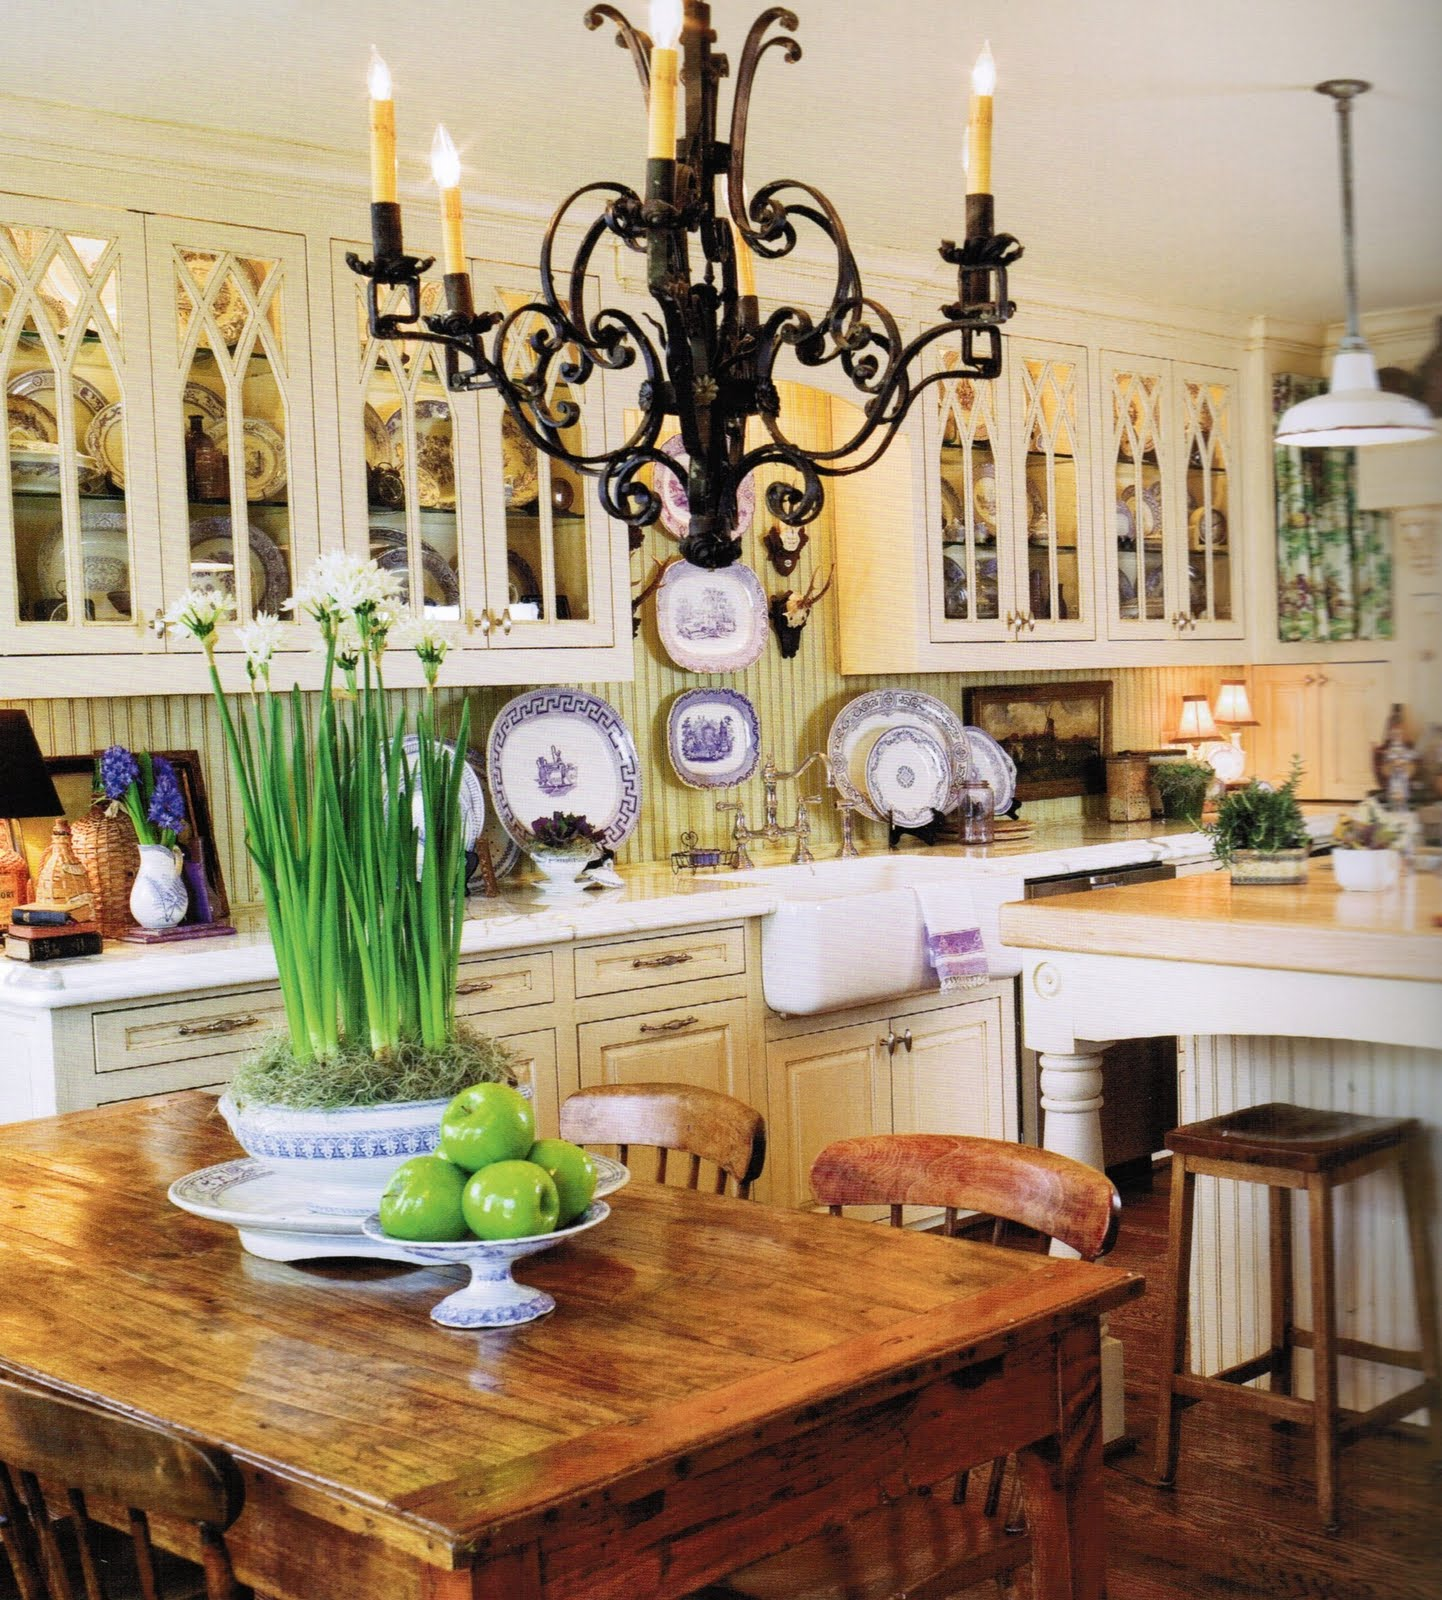 Vintage French Kitchen: Maison Decor: Romantic Kitchen Decor